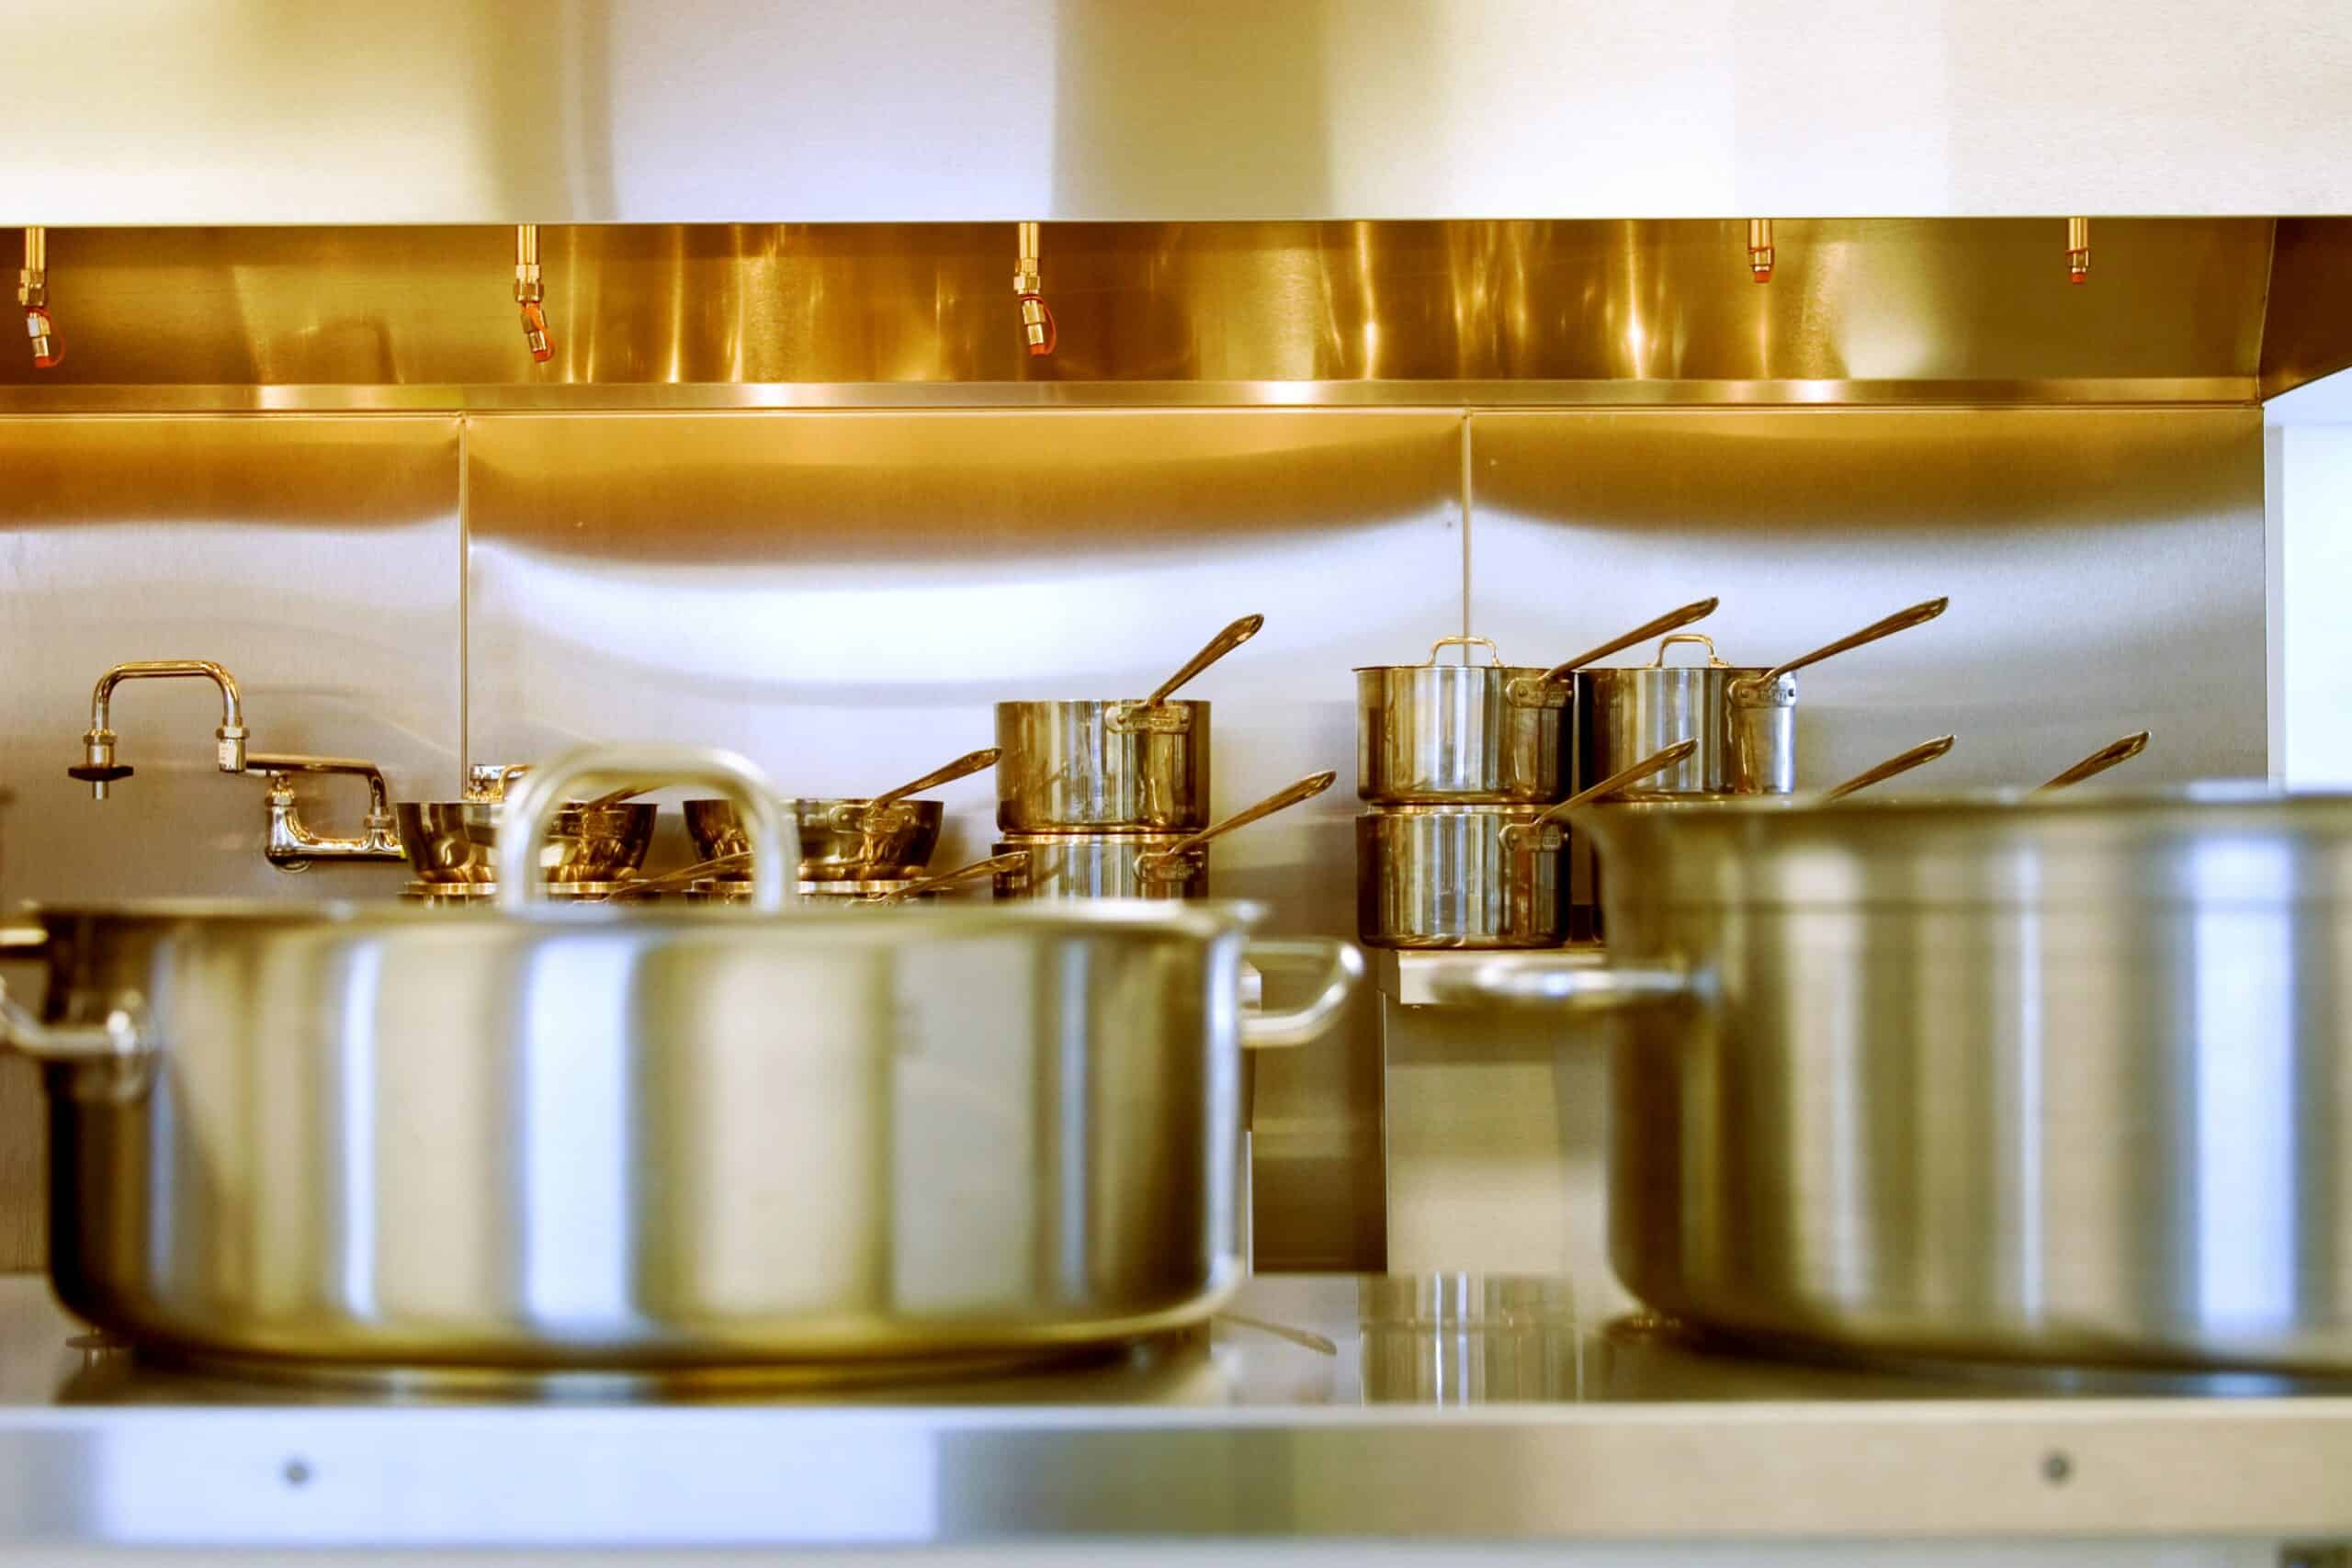 Commercial pots and pans